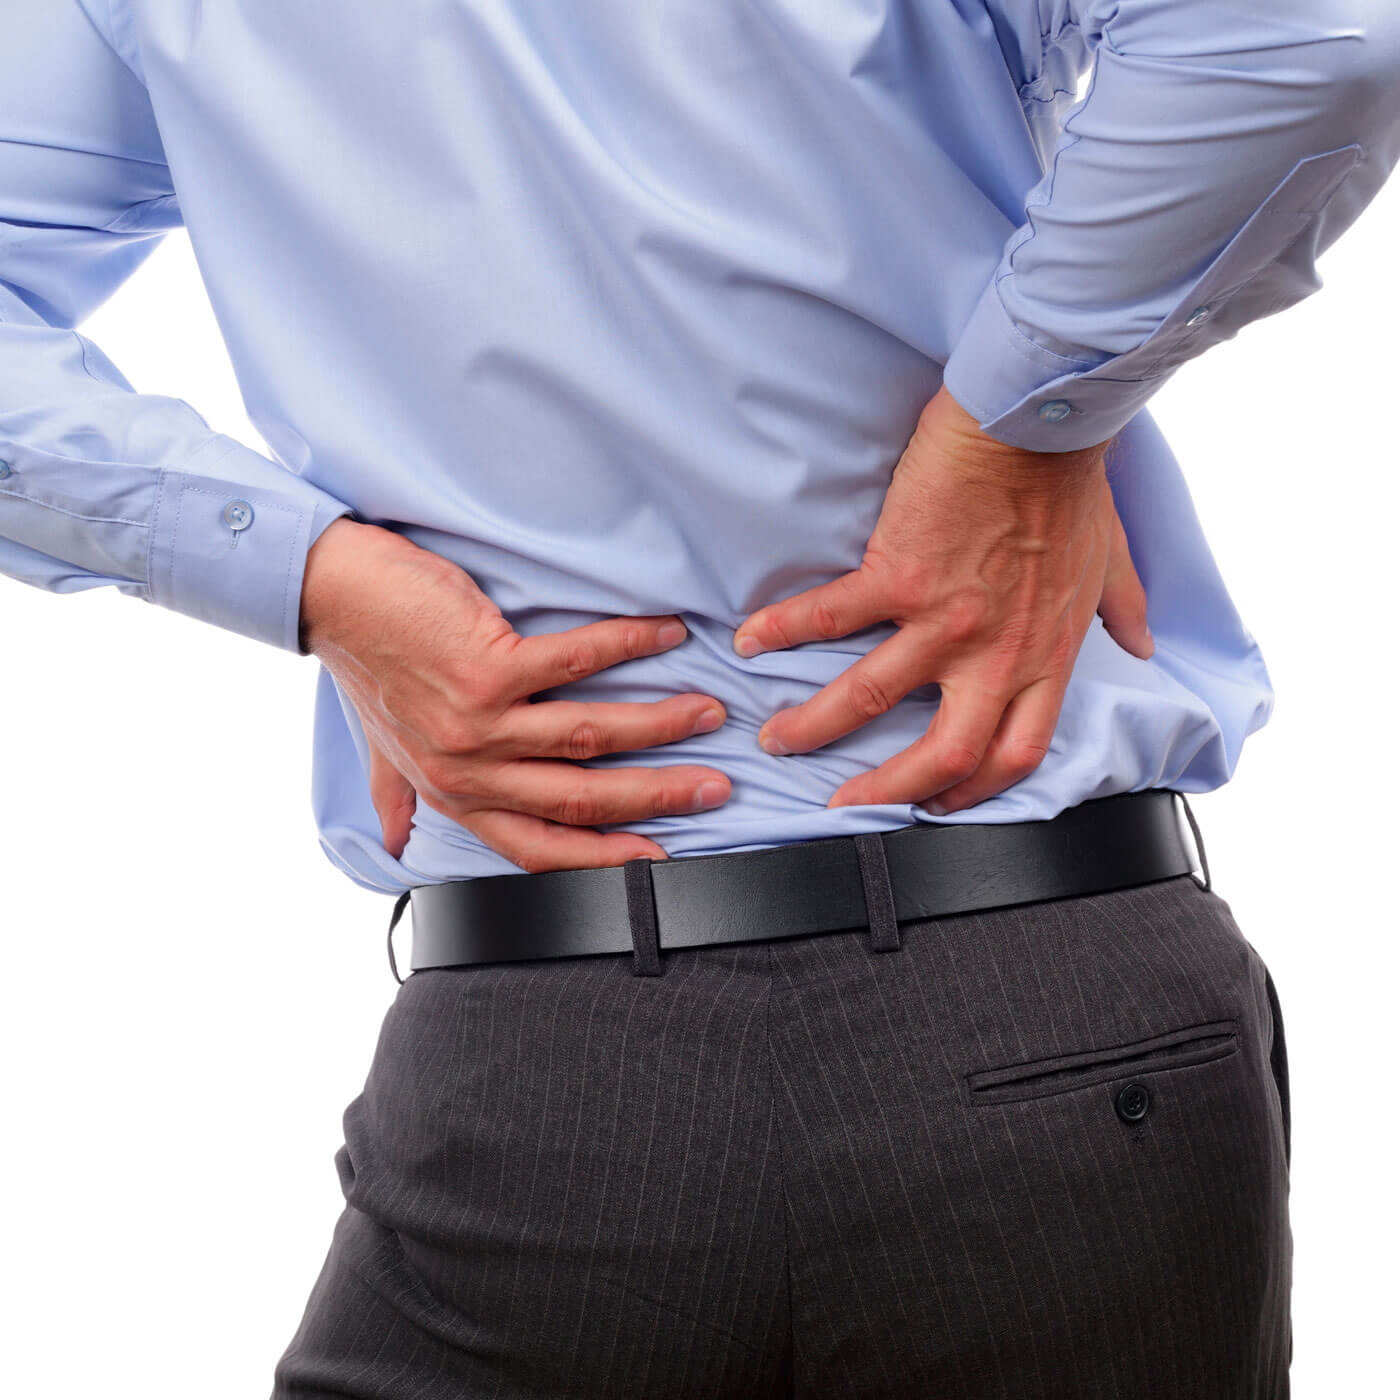 Essential Chiropractic and Healthcare Clinic - Chiropractic Conditions General Back and Lower Back Treatment and Relief